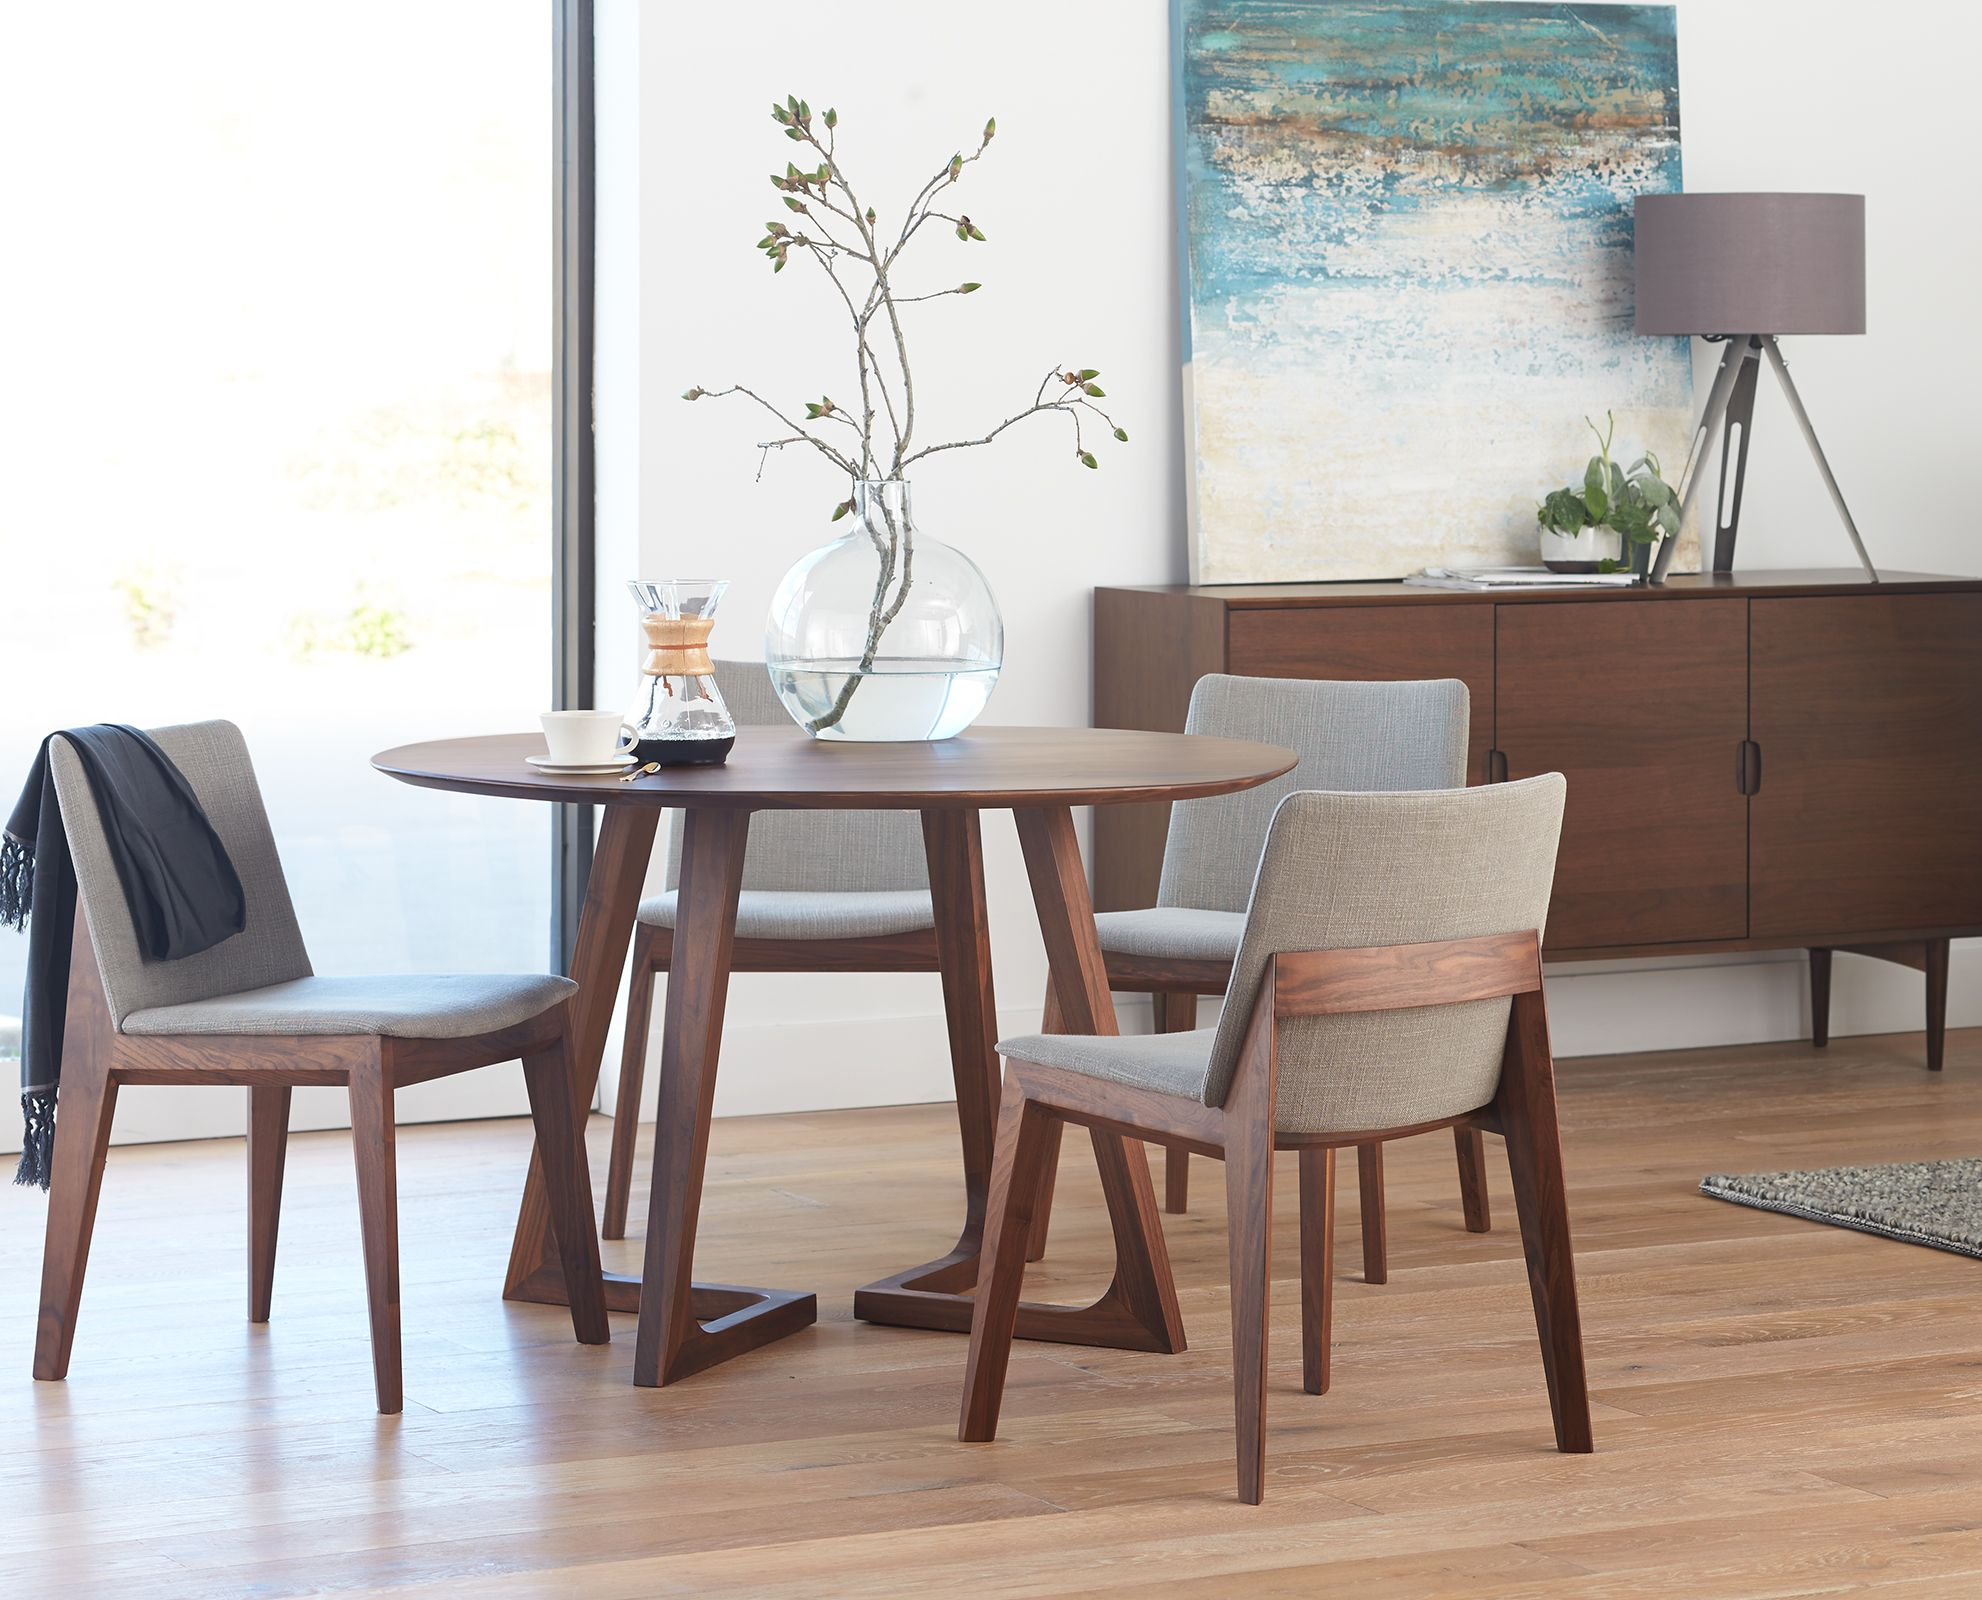 two seat kitchen table Round table and chairs from Dania